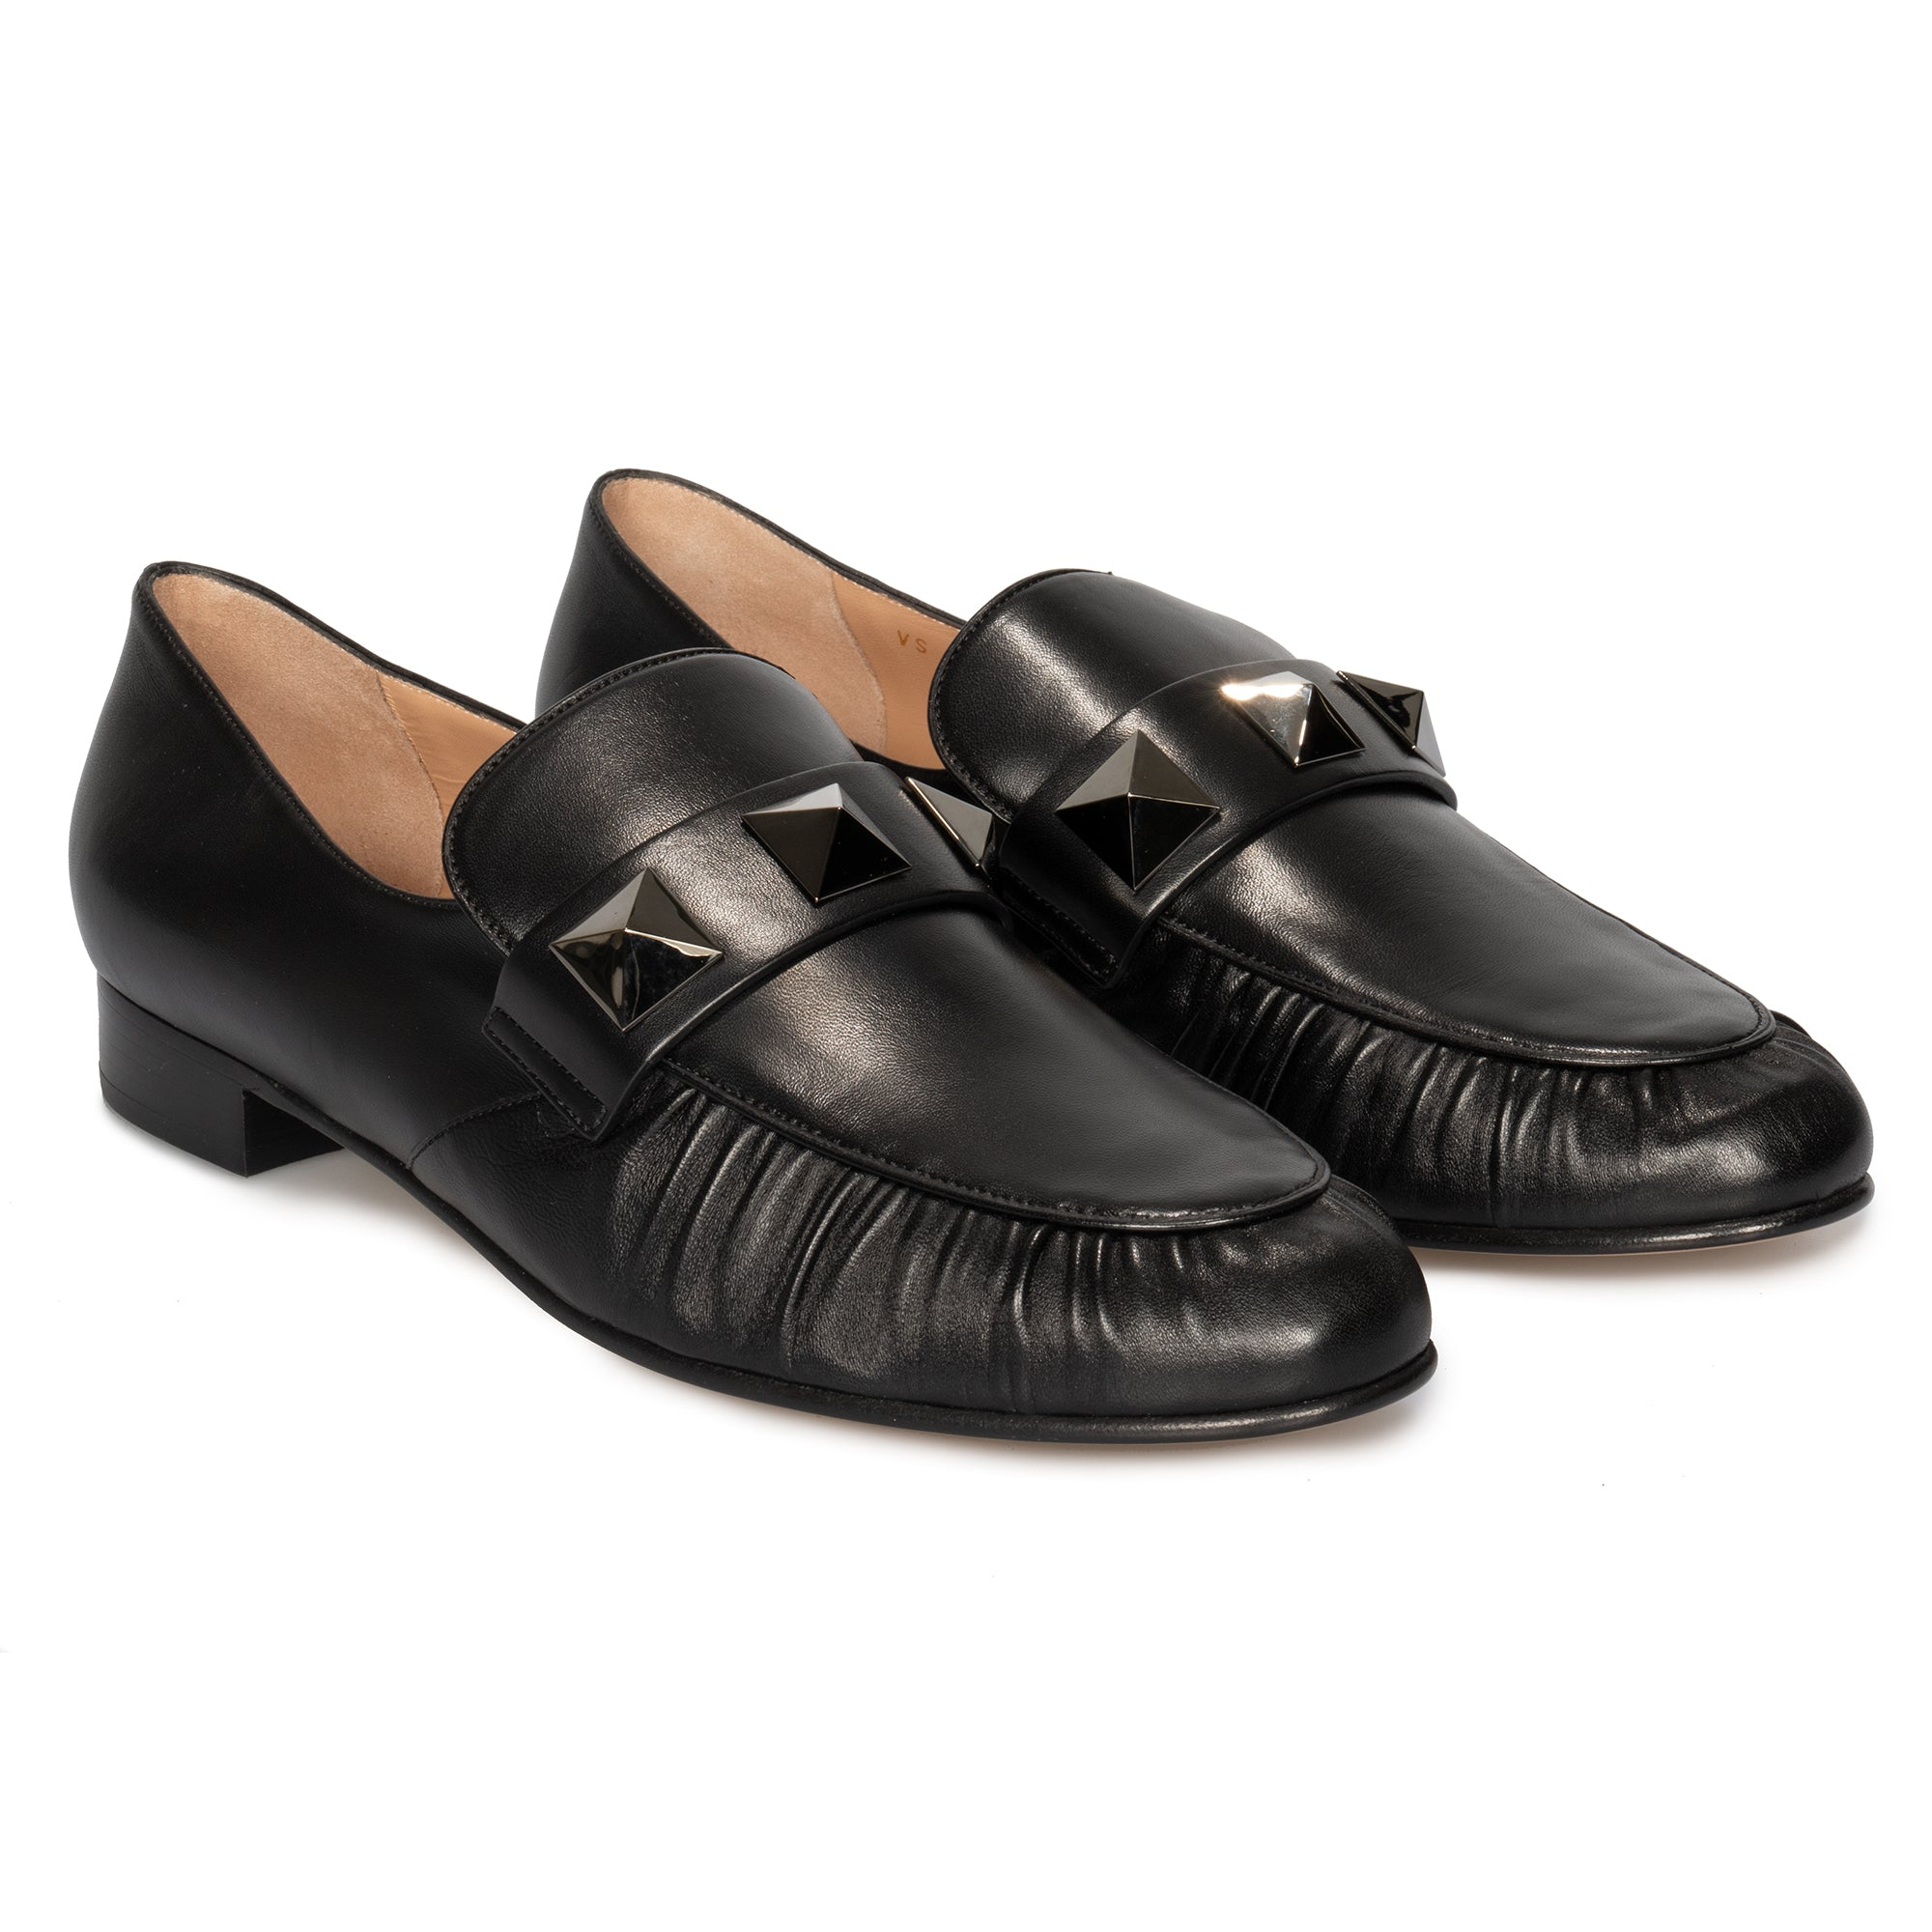 Valentino Macro Stud Loafers in Black